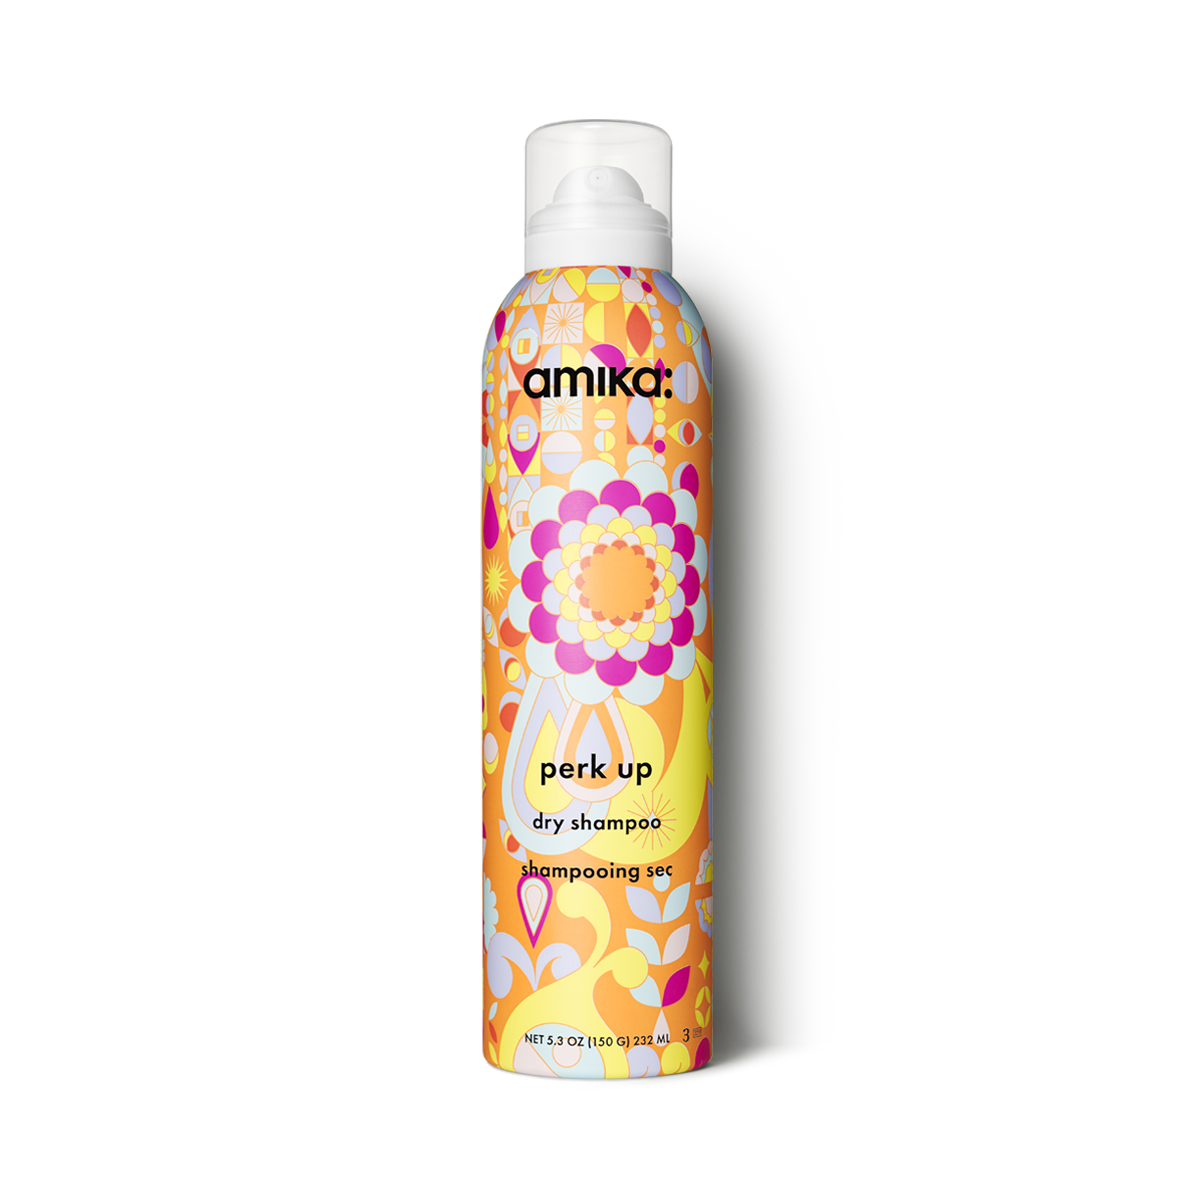 perk up <span> dry shampoo